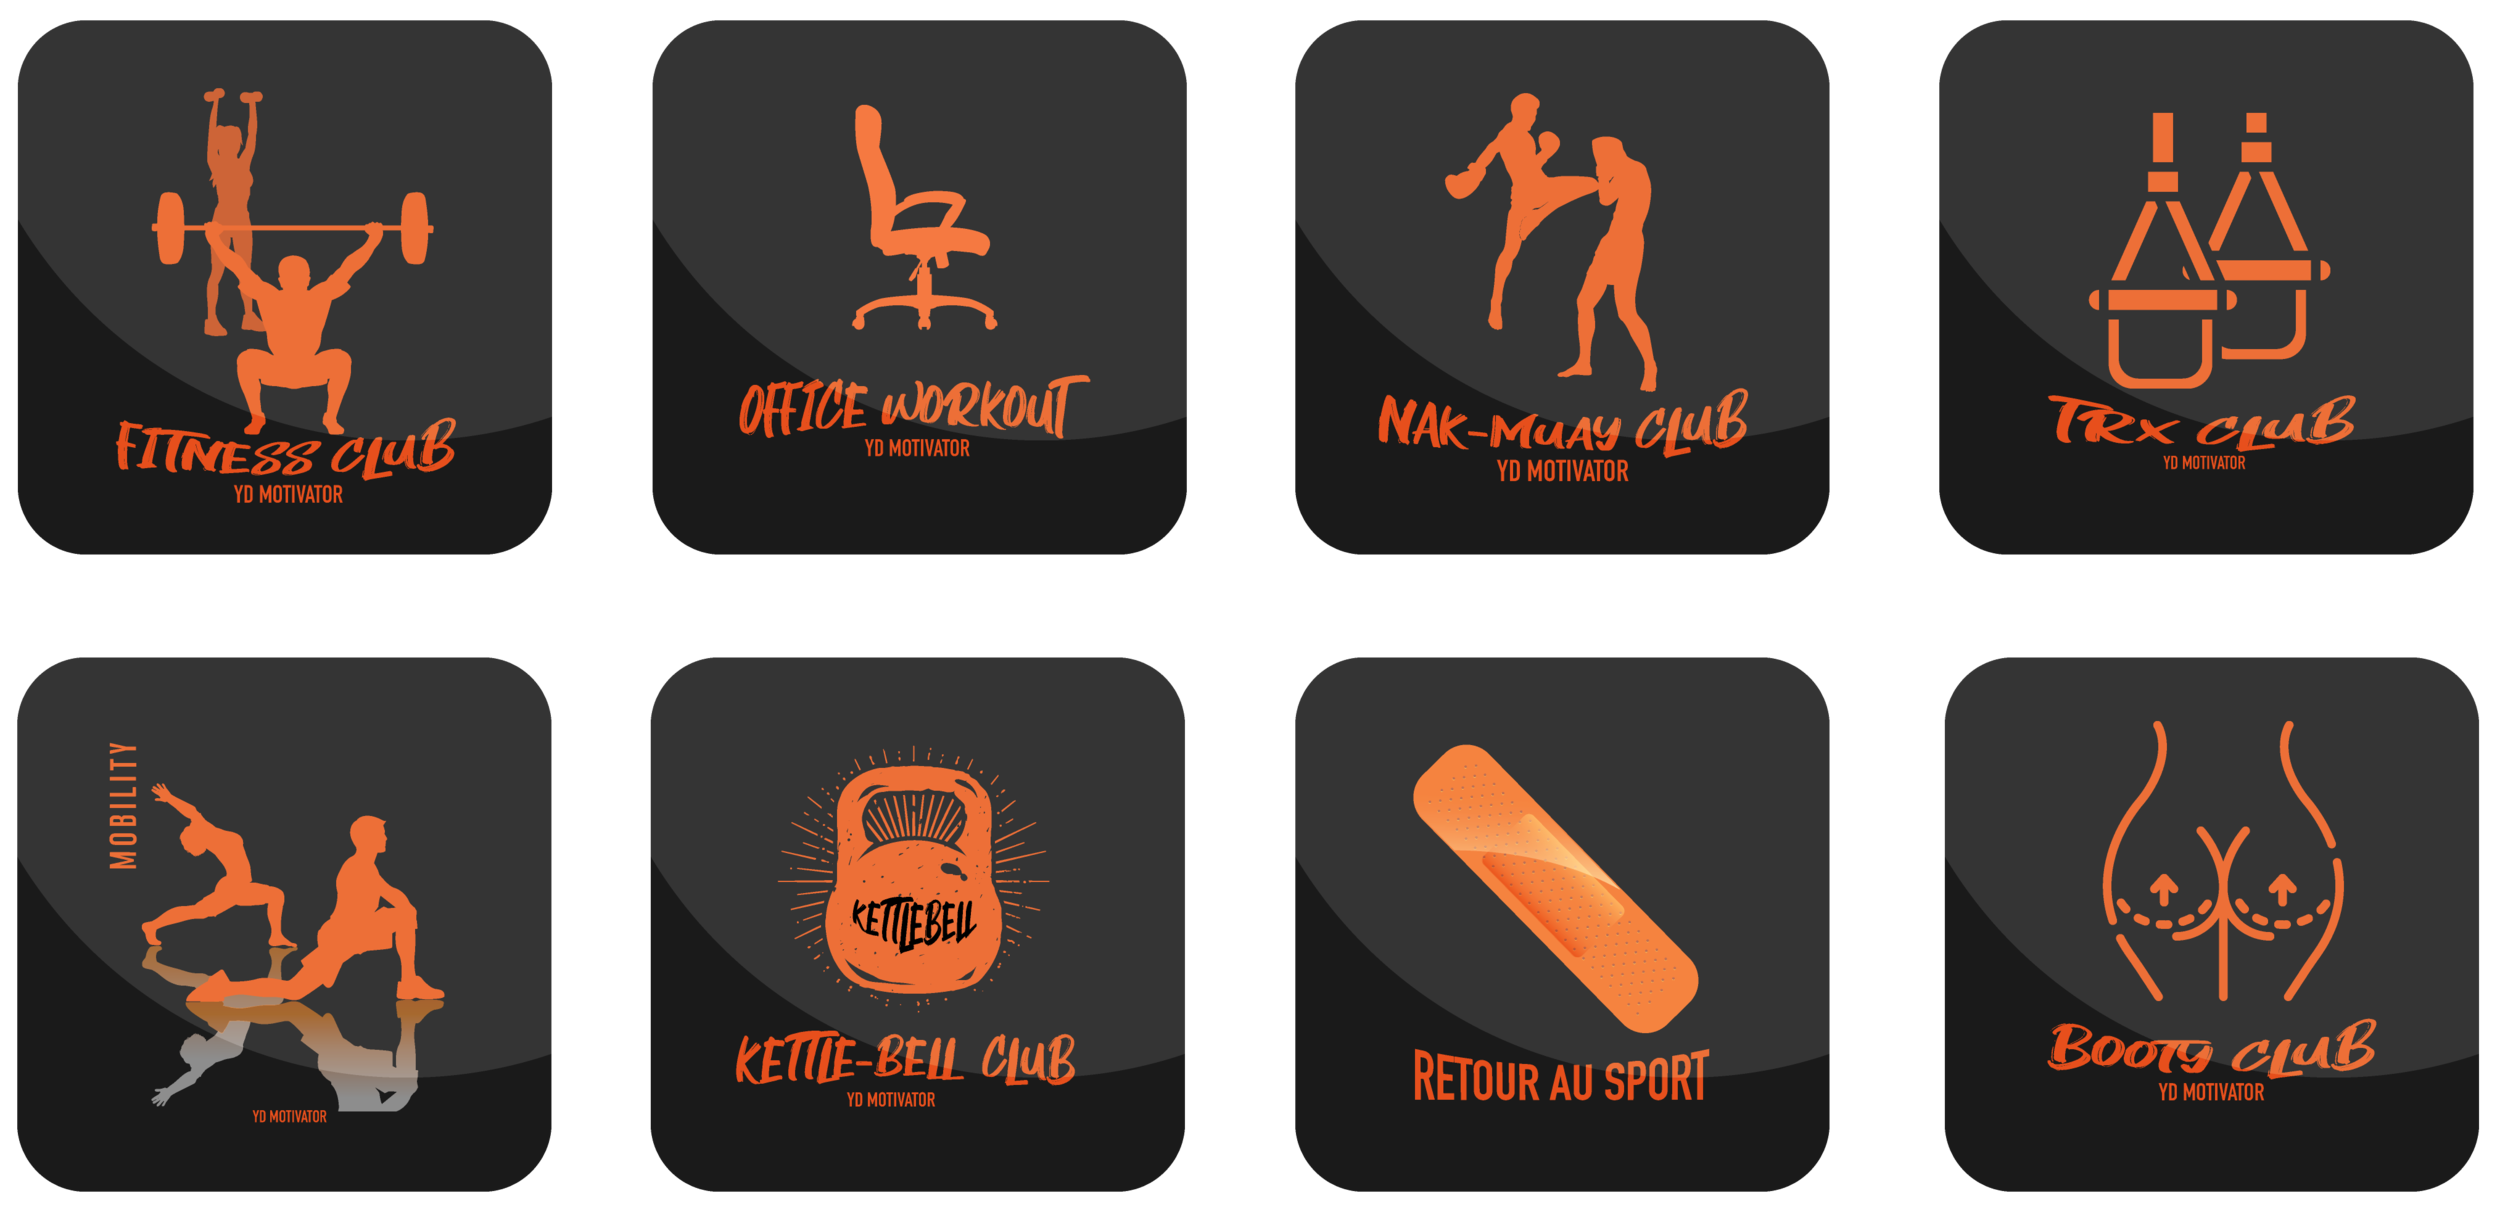 WORKOUTS_ICONS_TRANSPARENT.png